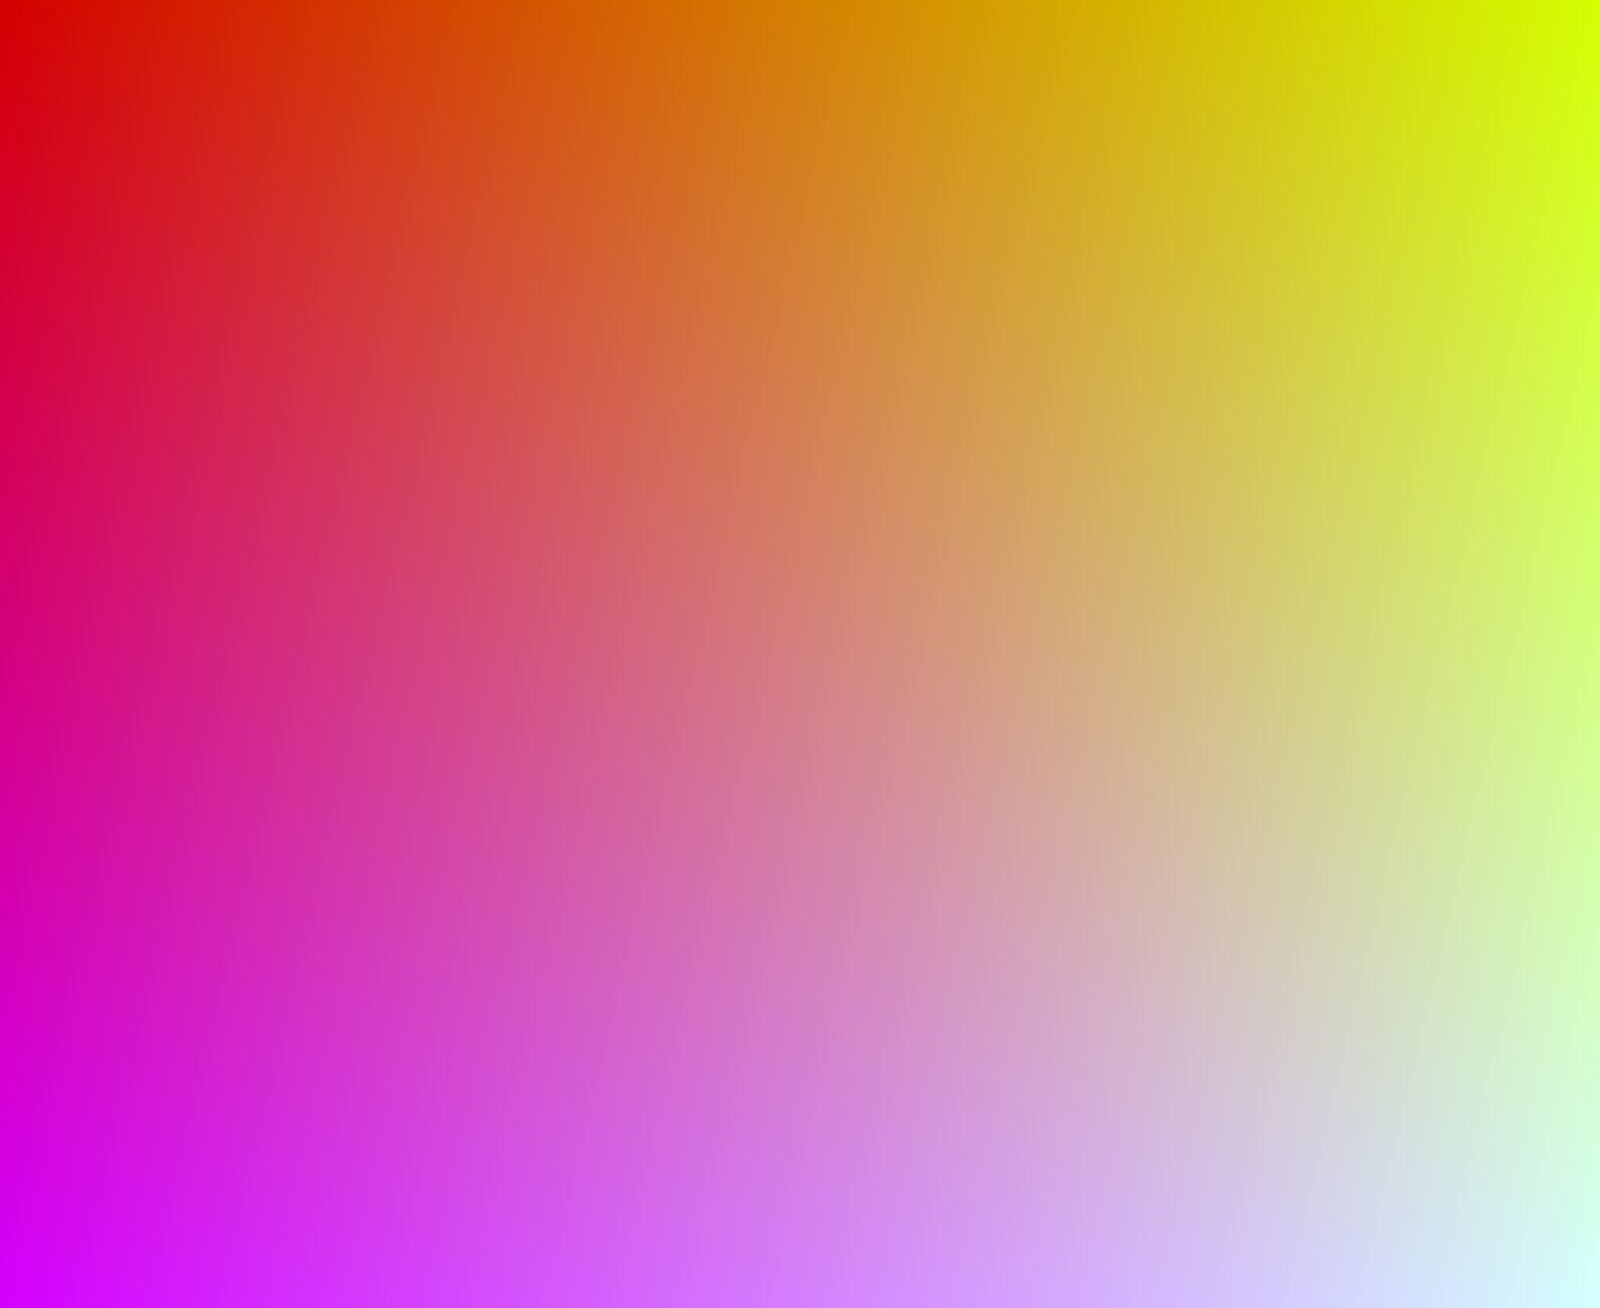 Creating canvas fills and gradients